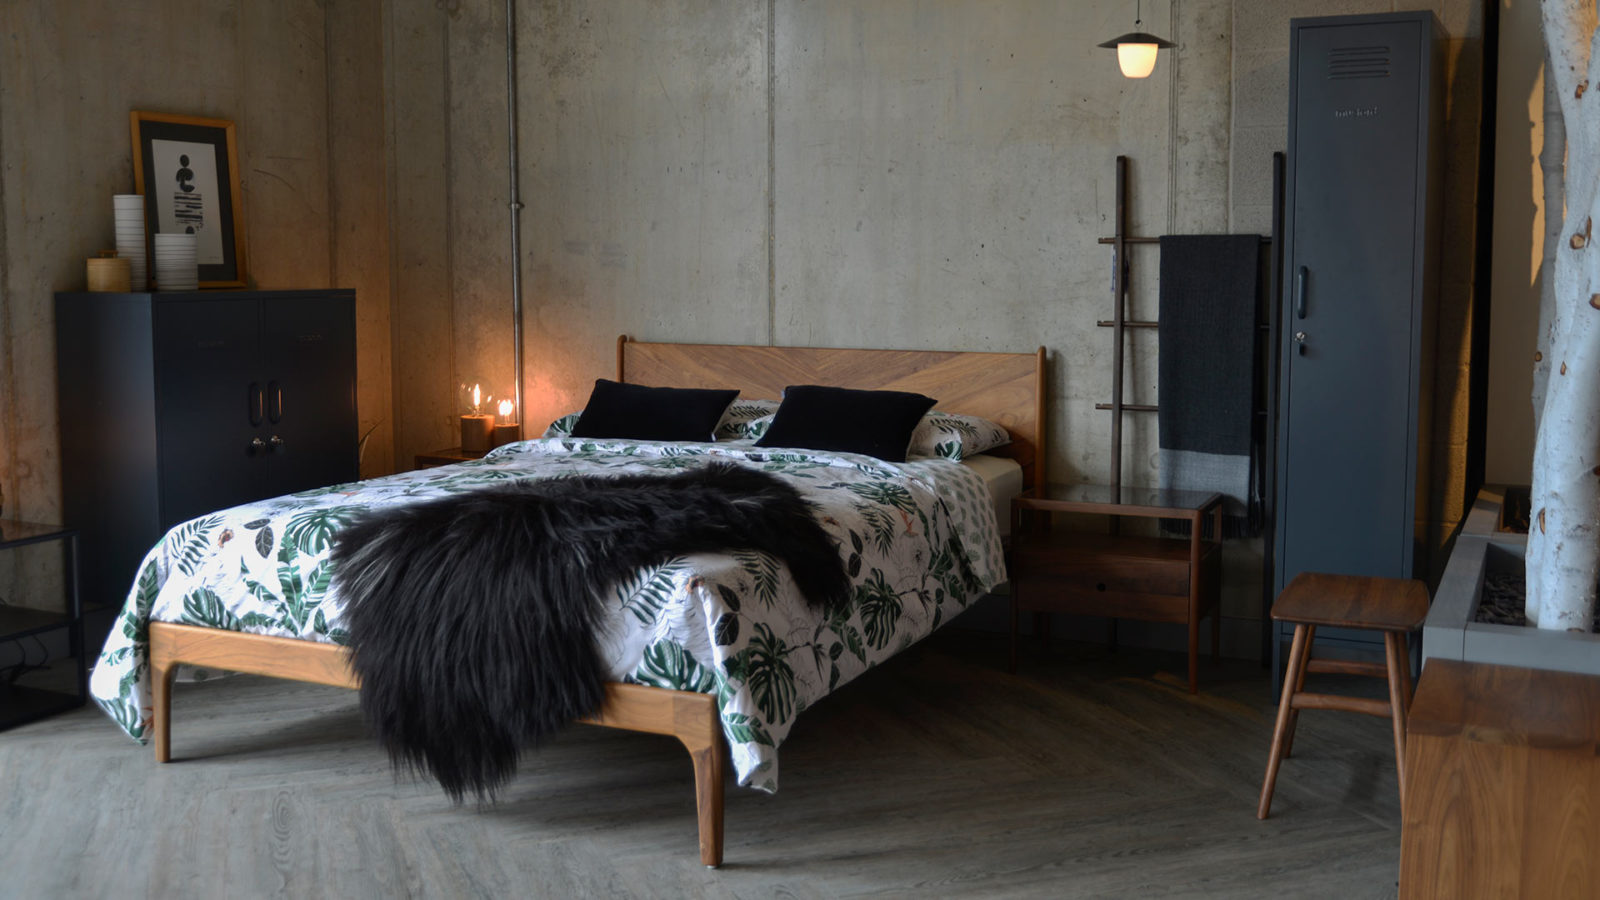 Industrial style bedroom featuring our hand made Hoxton bed in walnut with grey storage lockers and patterned bedding.